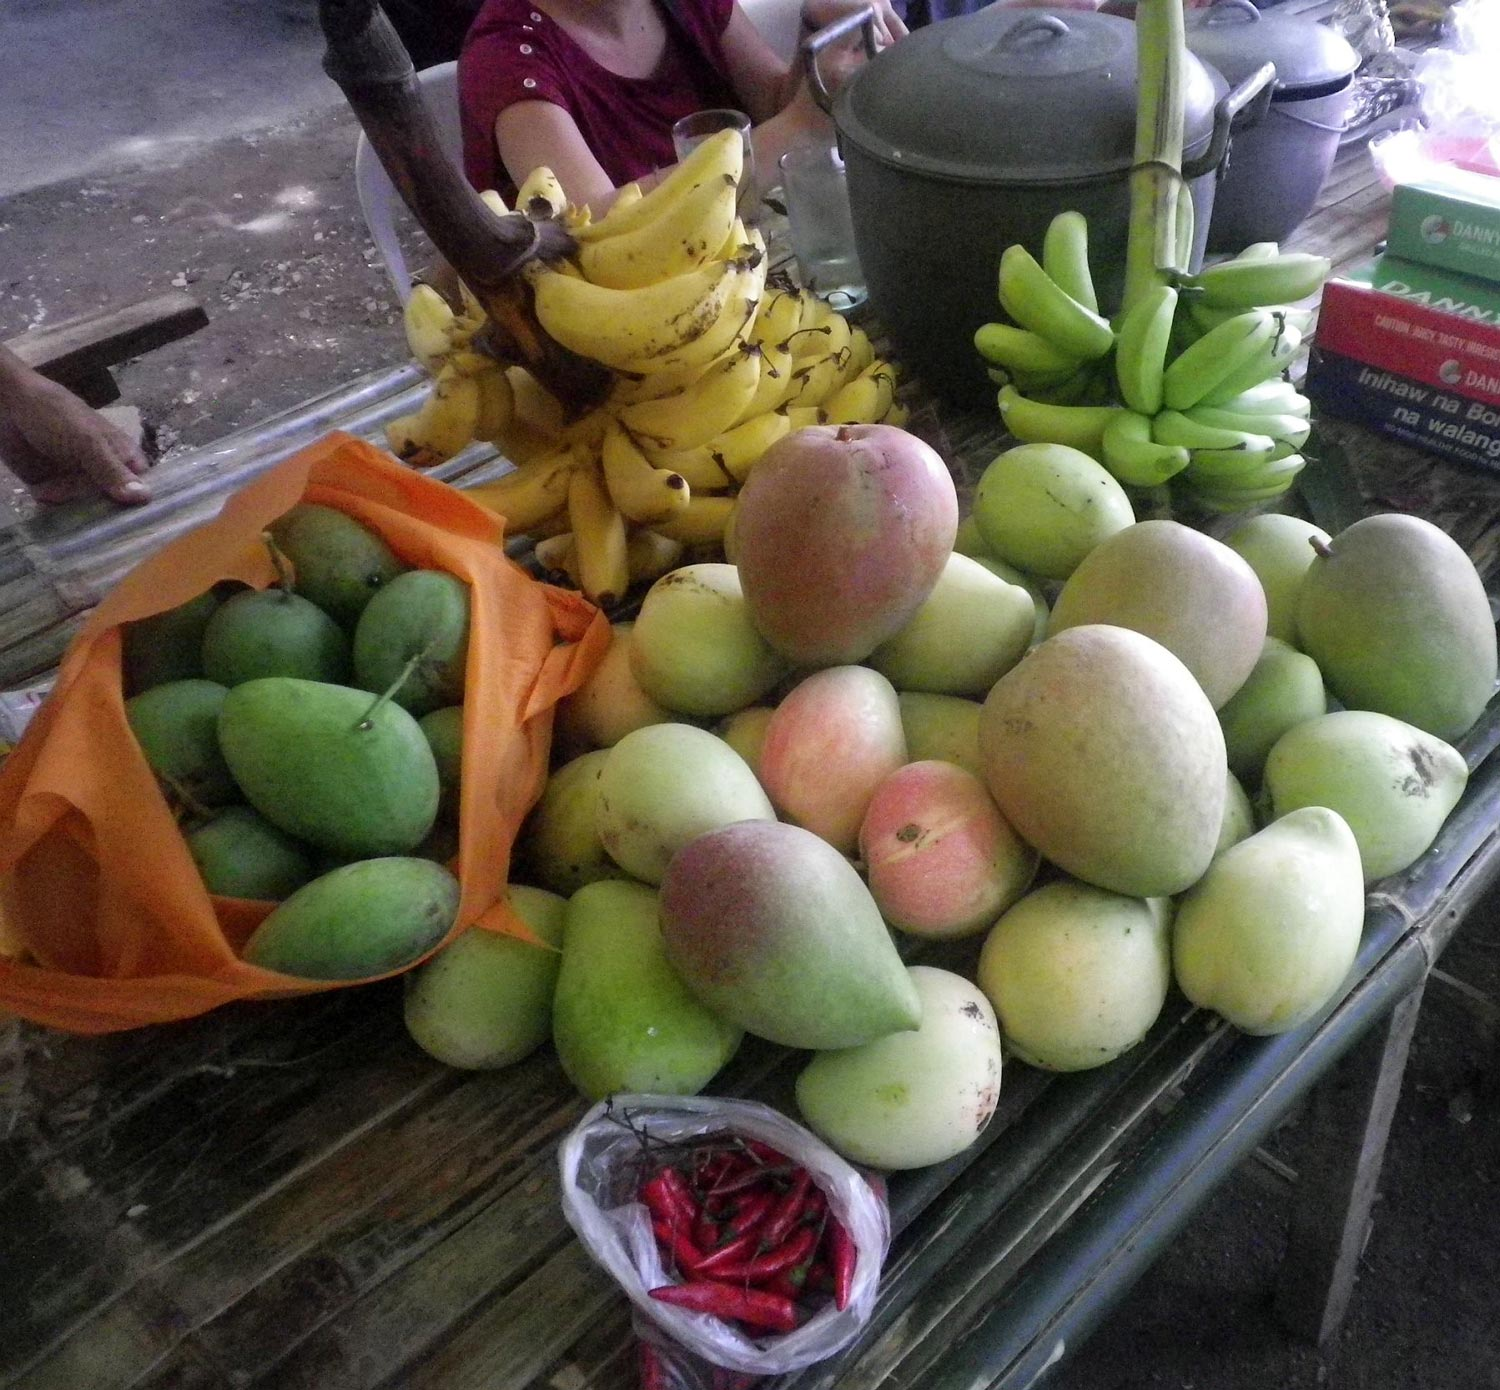 The fertile earth of Cupang continues to yield so many kinds of fruits and vegetables: several varieties of sweet mango and bananas all-year round, and tons of chico in December and January. Over the years, many of the orchards have been displaced by subdivisions, resorts and factories. (Photo by Ed Maranan)